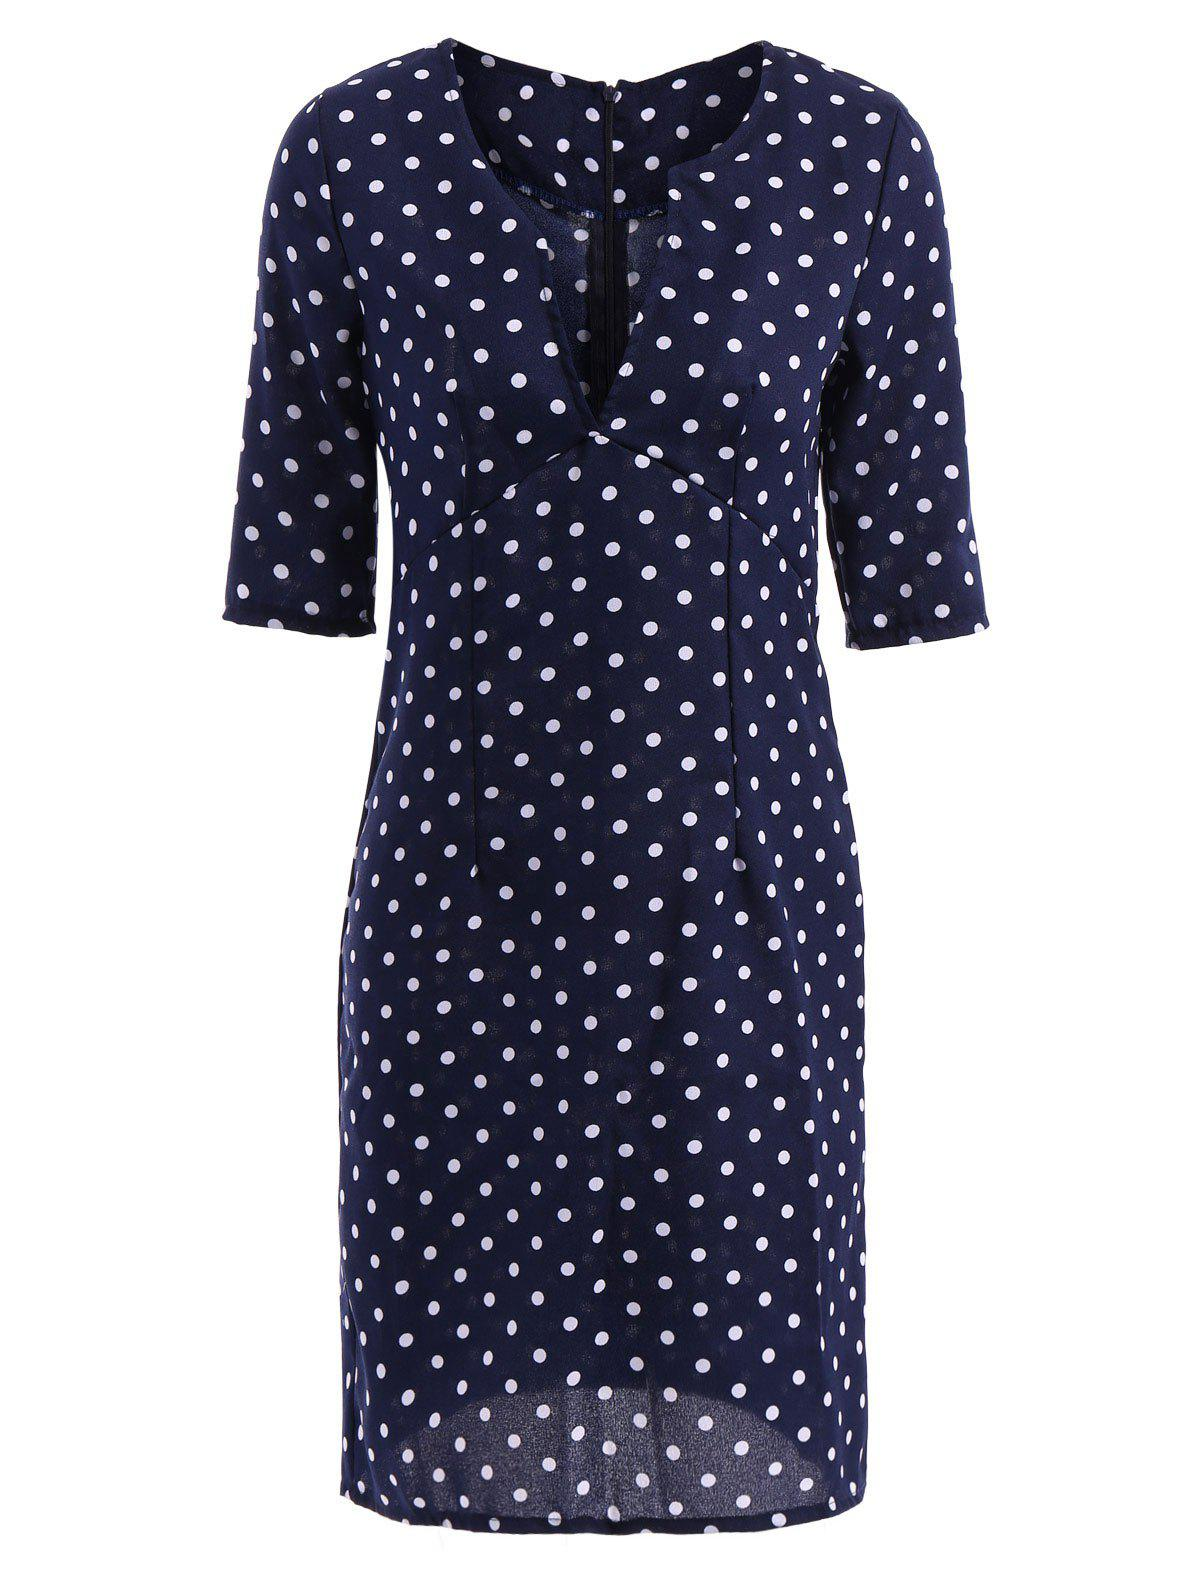 Robe Sexy Chic Col-V Motif Pois Manche 1/2 Pour Femmes